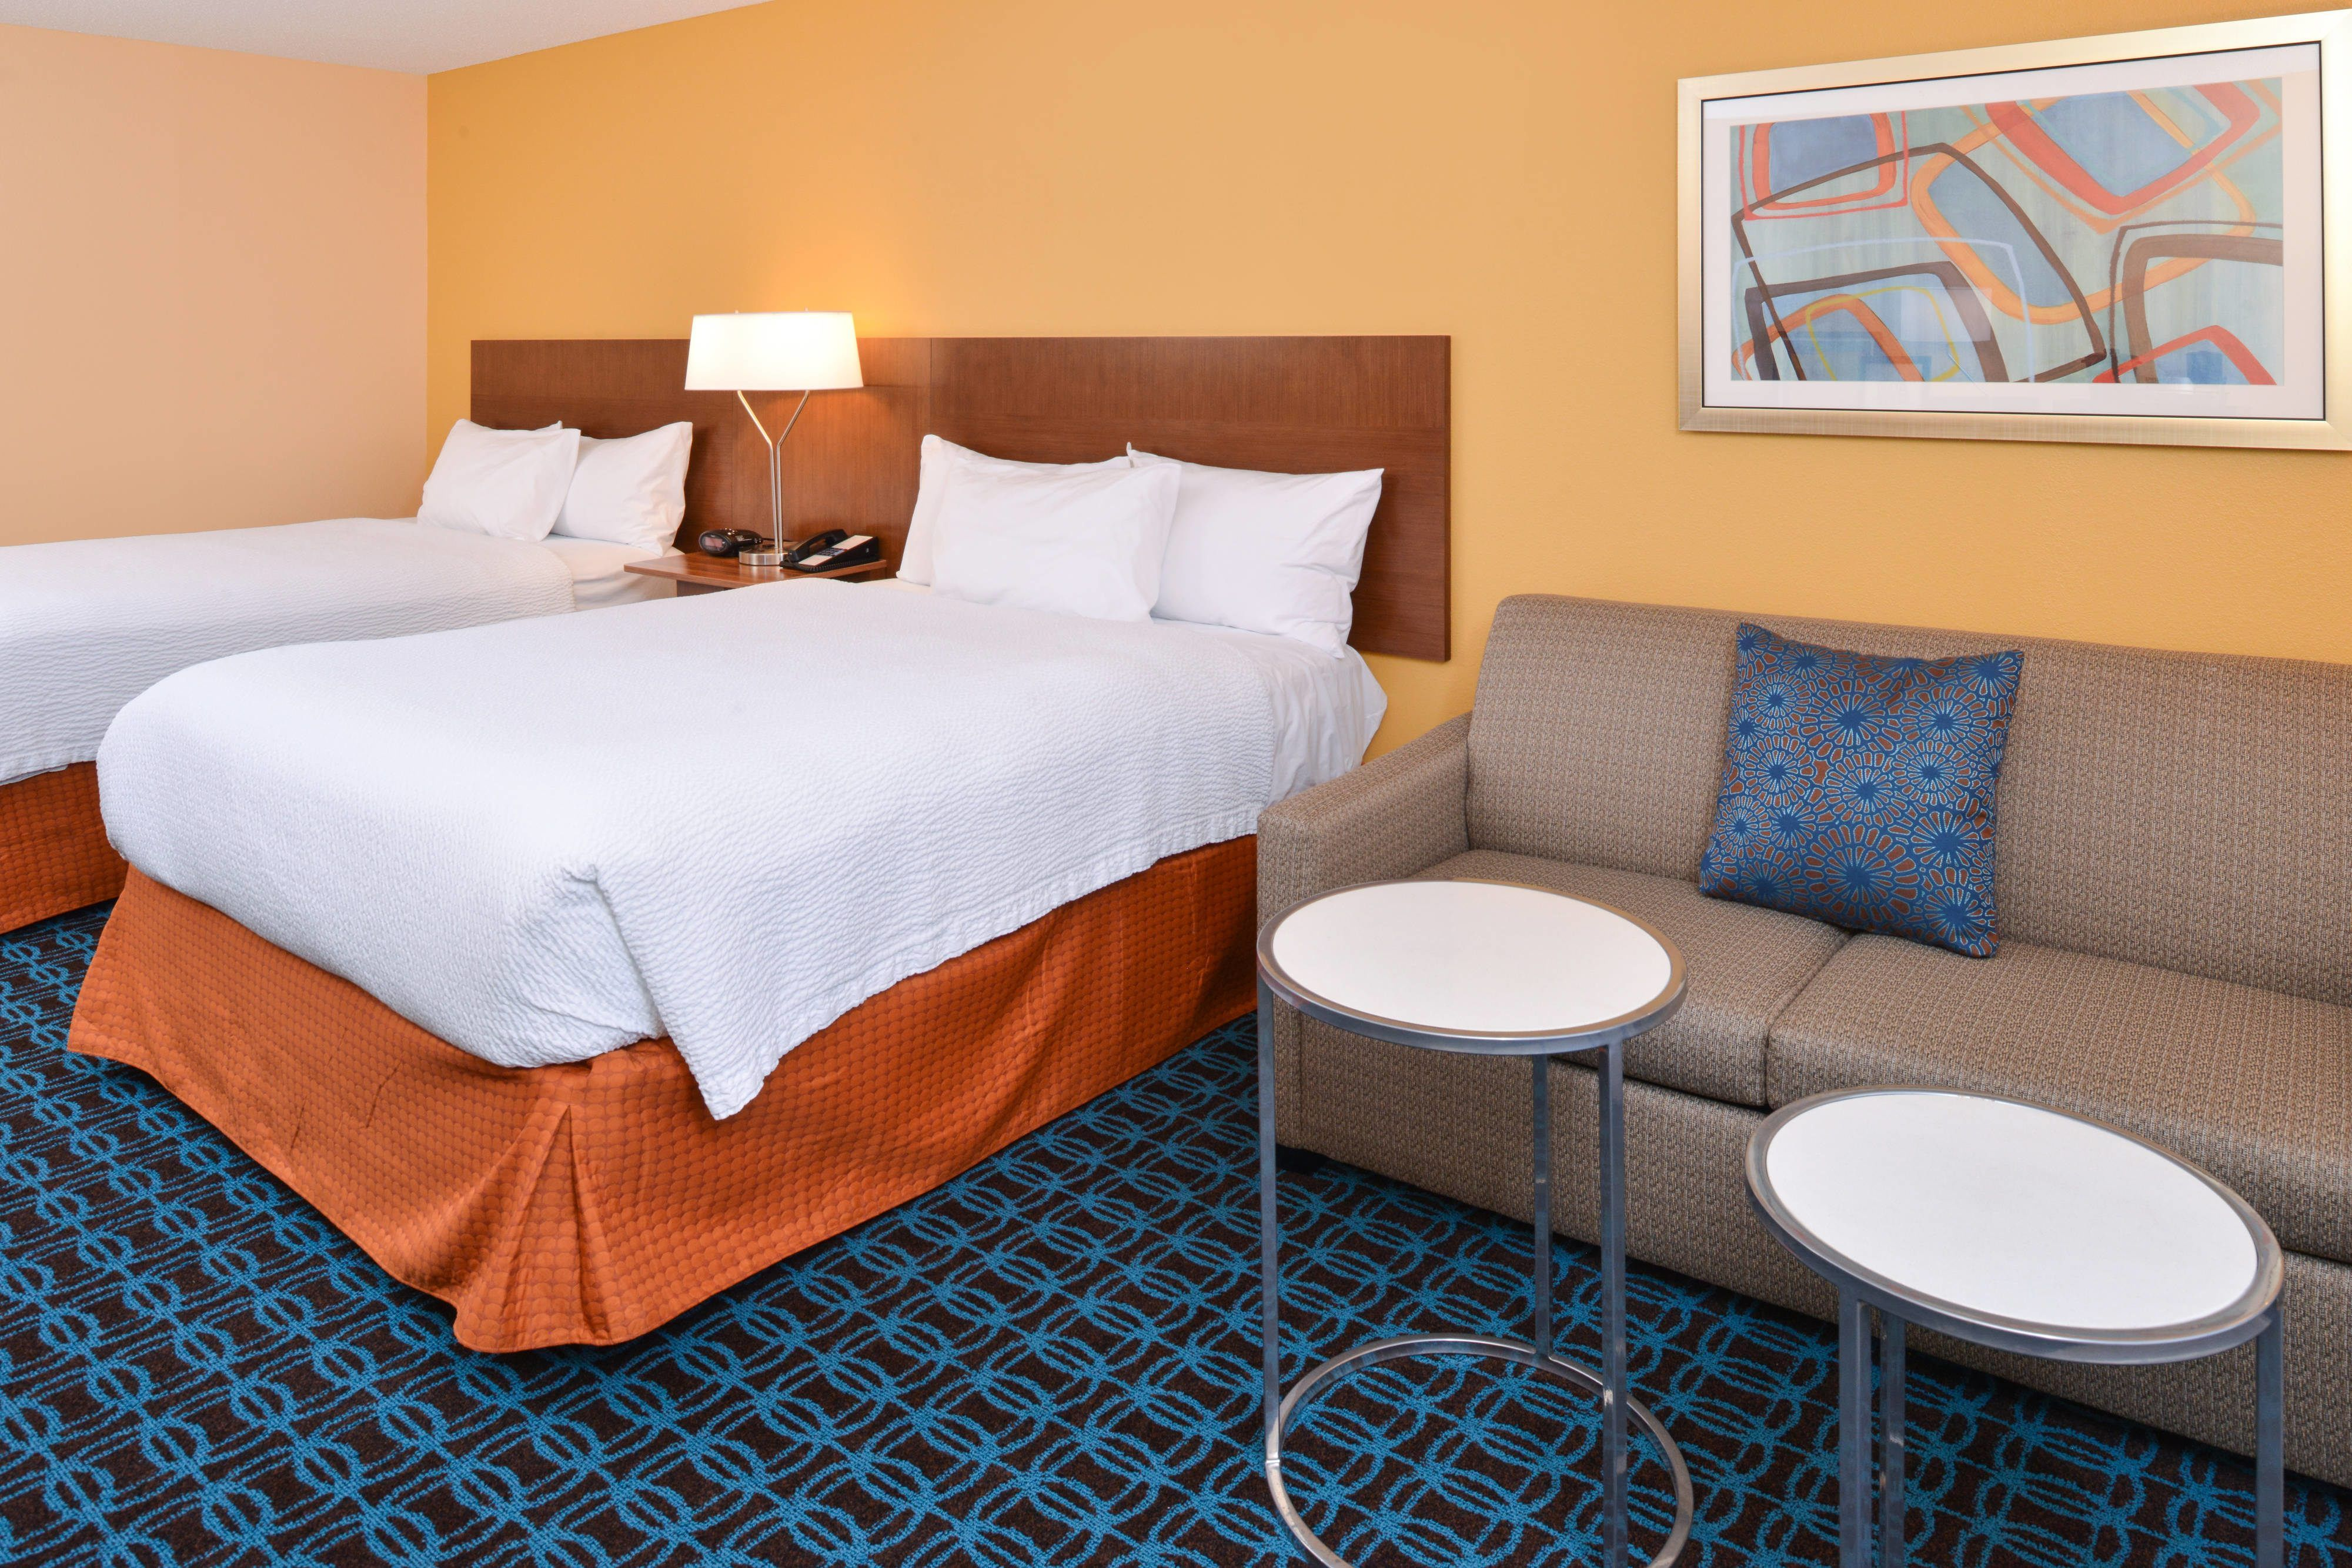 Fairfield Inn Orlando Airport Queen Queen Guest Room With Sofa Bed Suite Travel Hotels Fairfield Inn Orlando Airport Home Decor